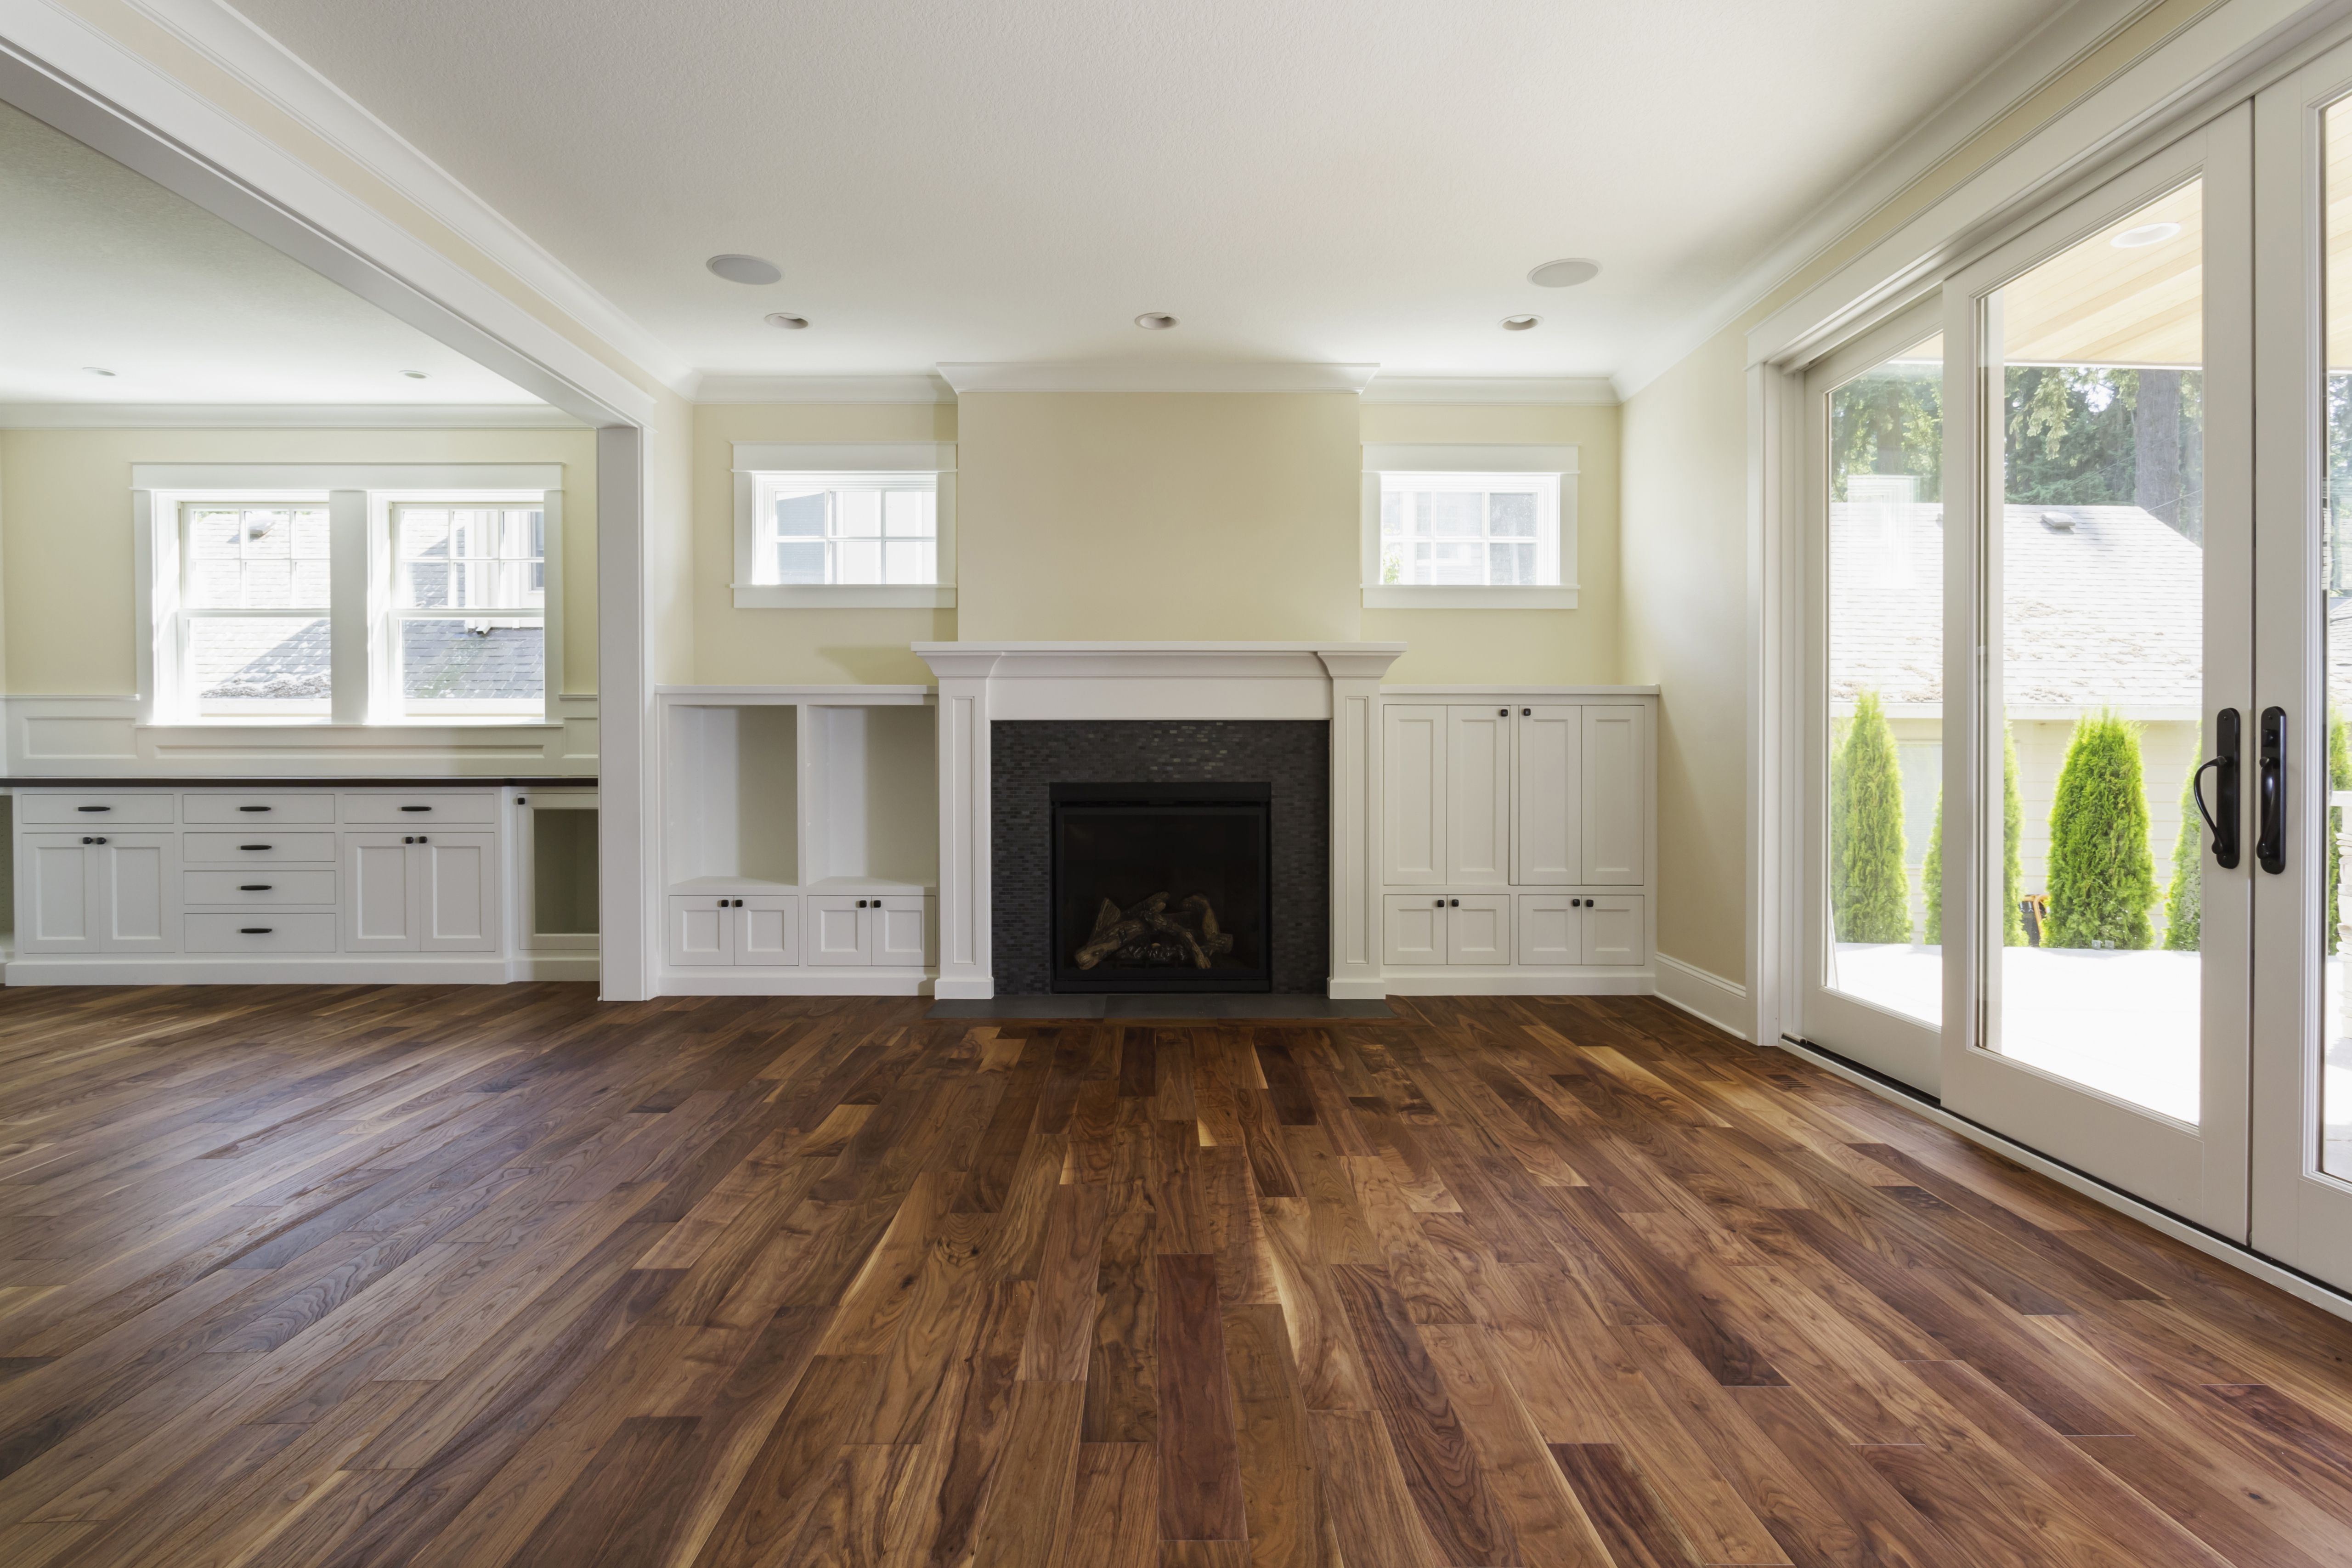 best hardwood floor filler of the pros and cons of prefinished hardwood flooring for fireplace and built in shelves in living room 482143011 57bef8e33df78cc16e035397